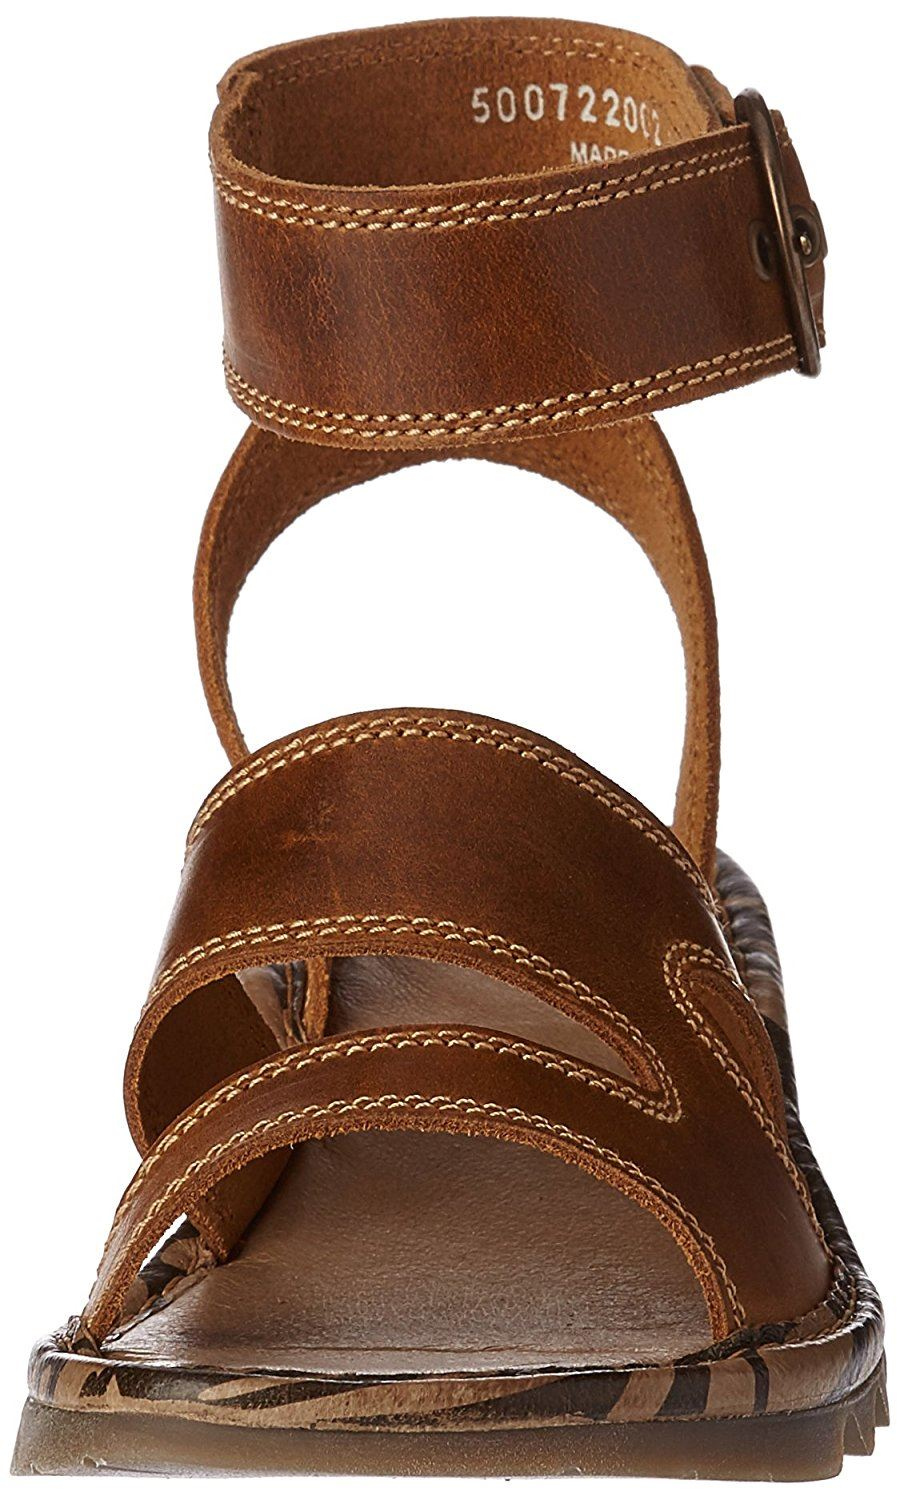 Fly-London-TILY722FLY-Ladies-Strappy-Gladiator-Style-Leather-Wedge-Sandals thumbnail 12